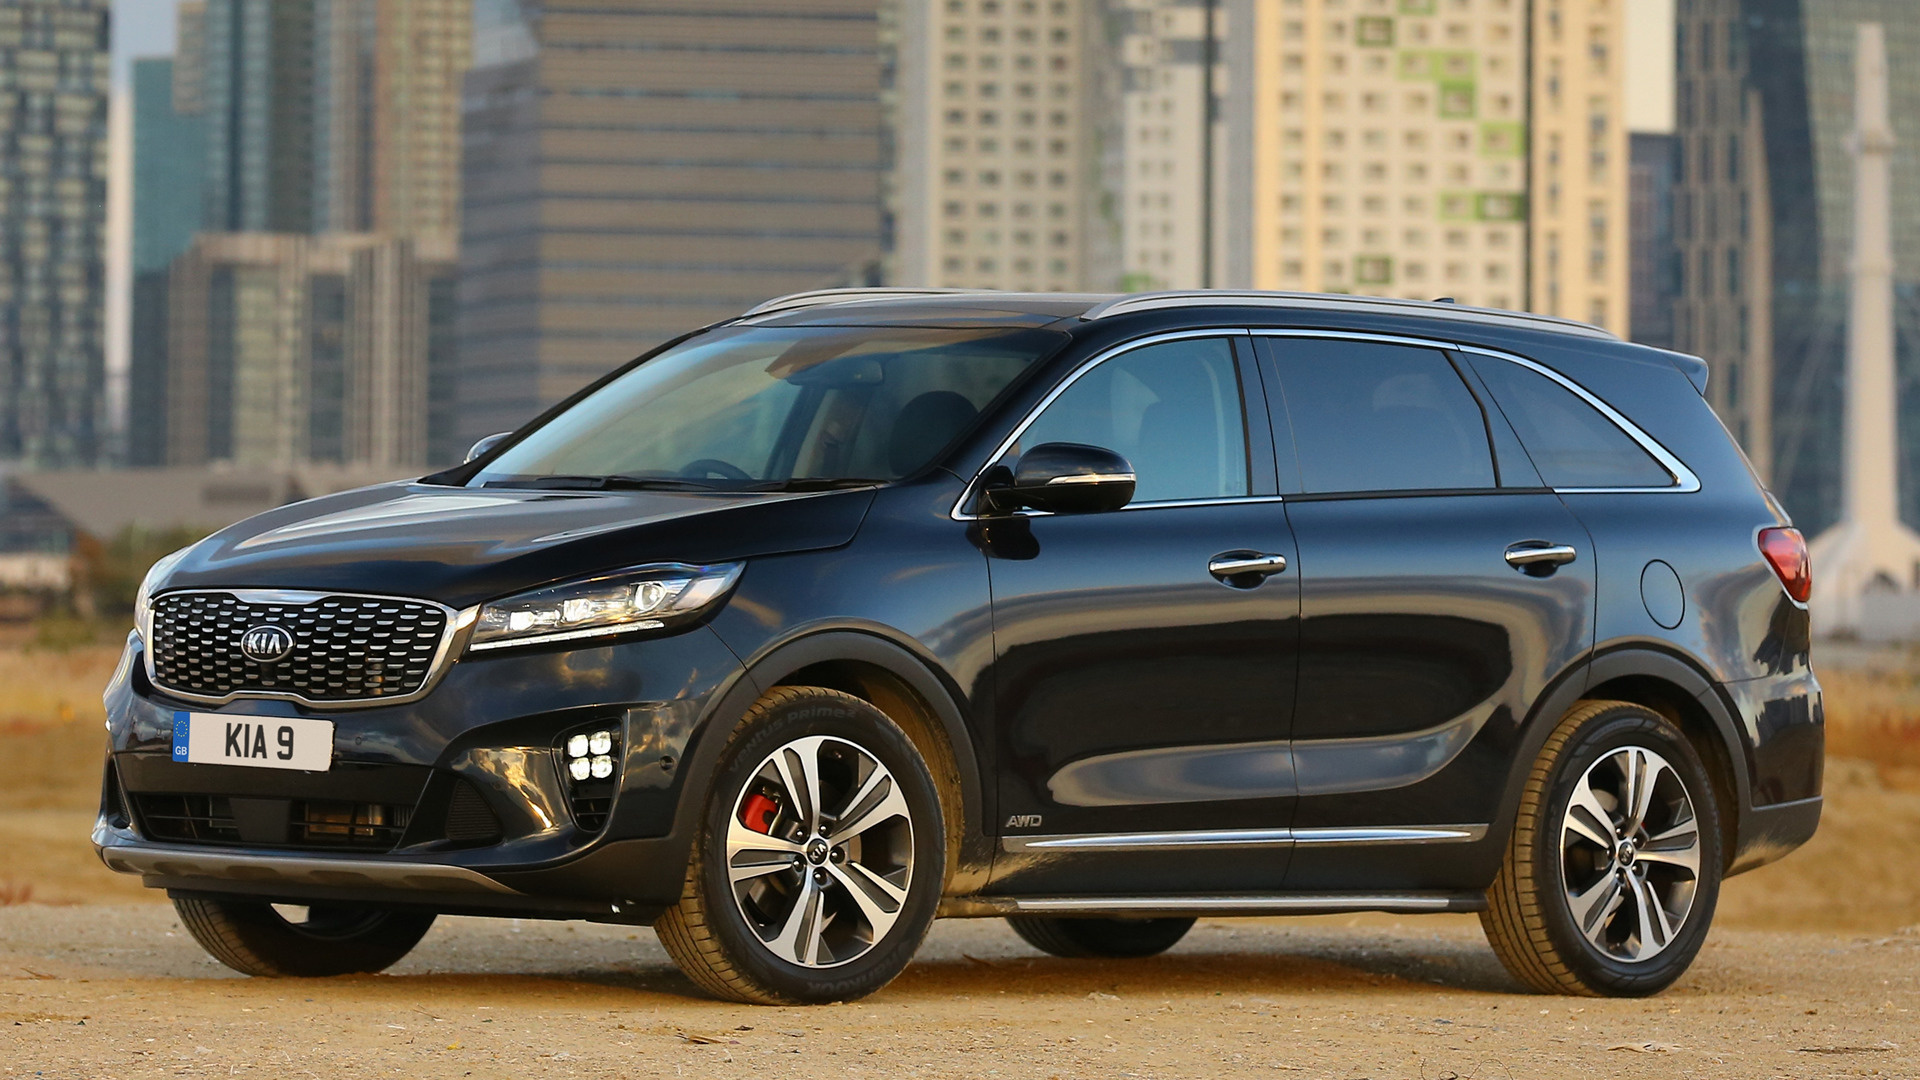 kia sorento gt line 2018 uk wallpapers and hd images car pixel. Black Bedroom Furniture Sets. Home Design Ideas